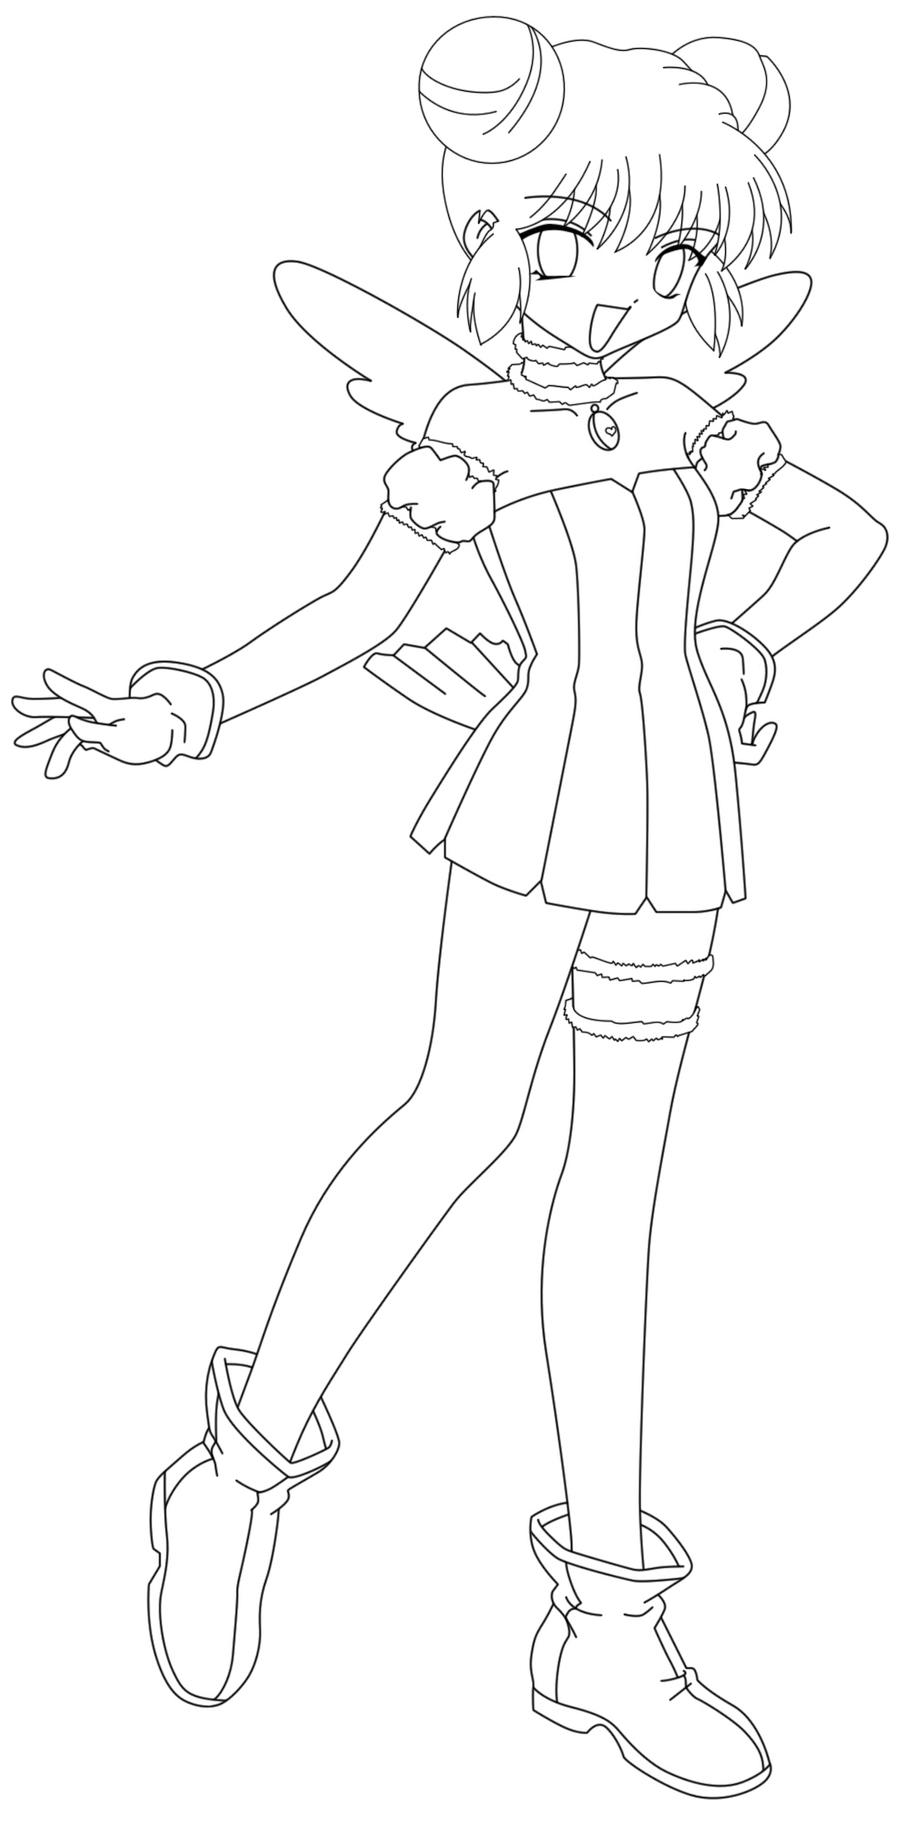 Mew lineart corina by sweetamberkins on deviantart for Mew coloring pages